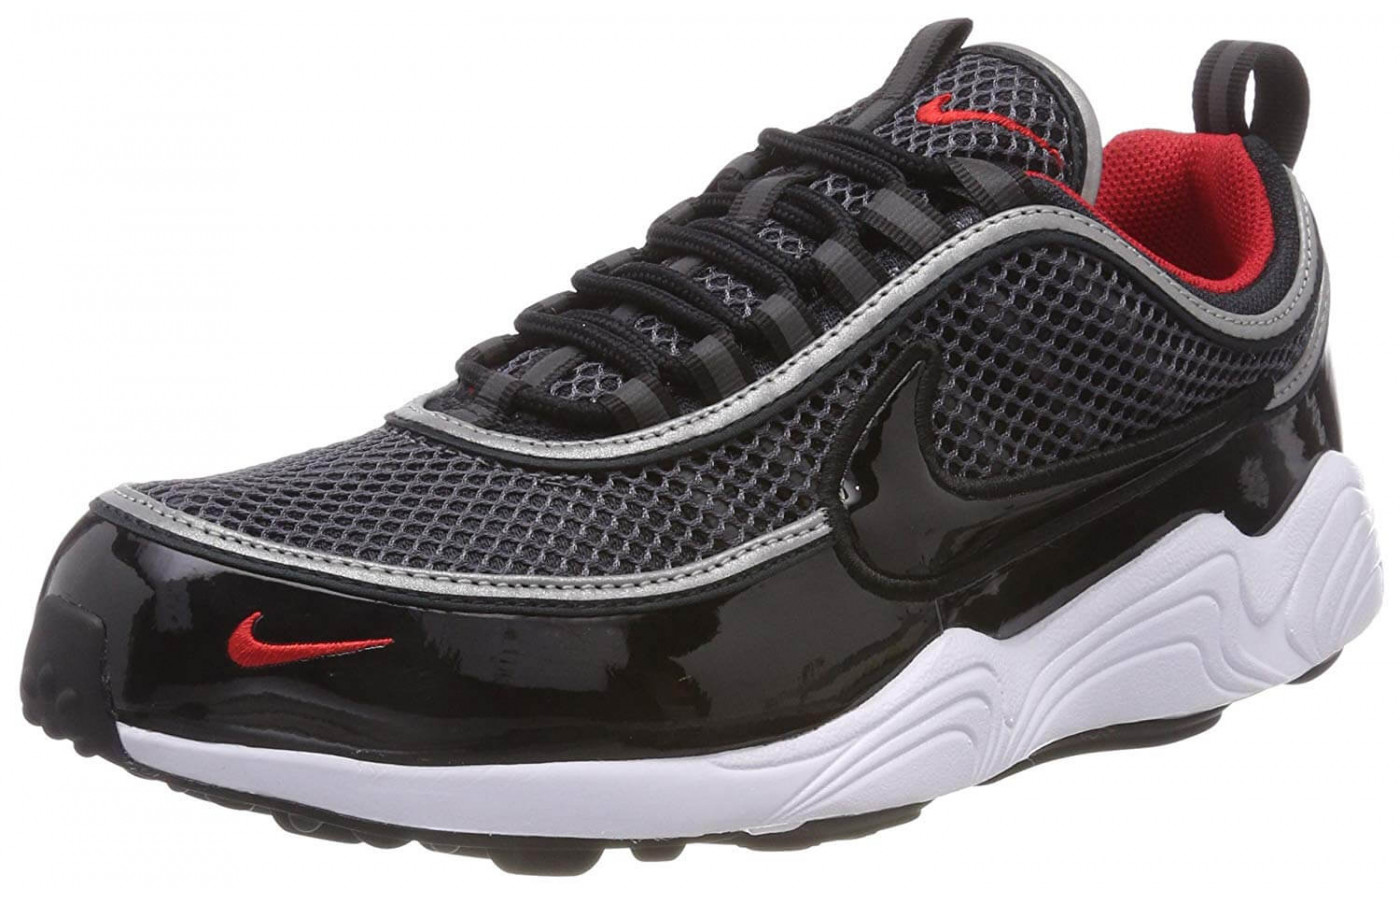 8f3c7b8808c8 Nike Air Zoom Spiridon  16 - To Buy or Not in May 2019